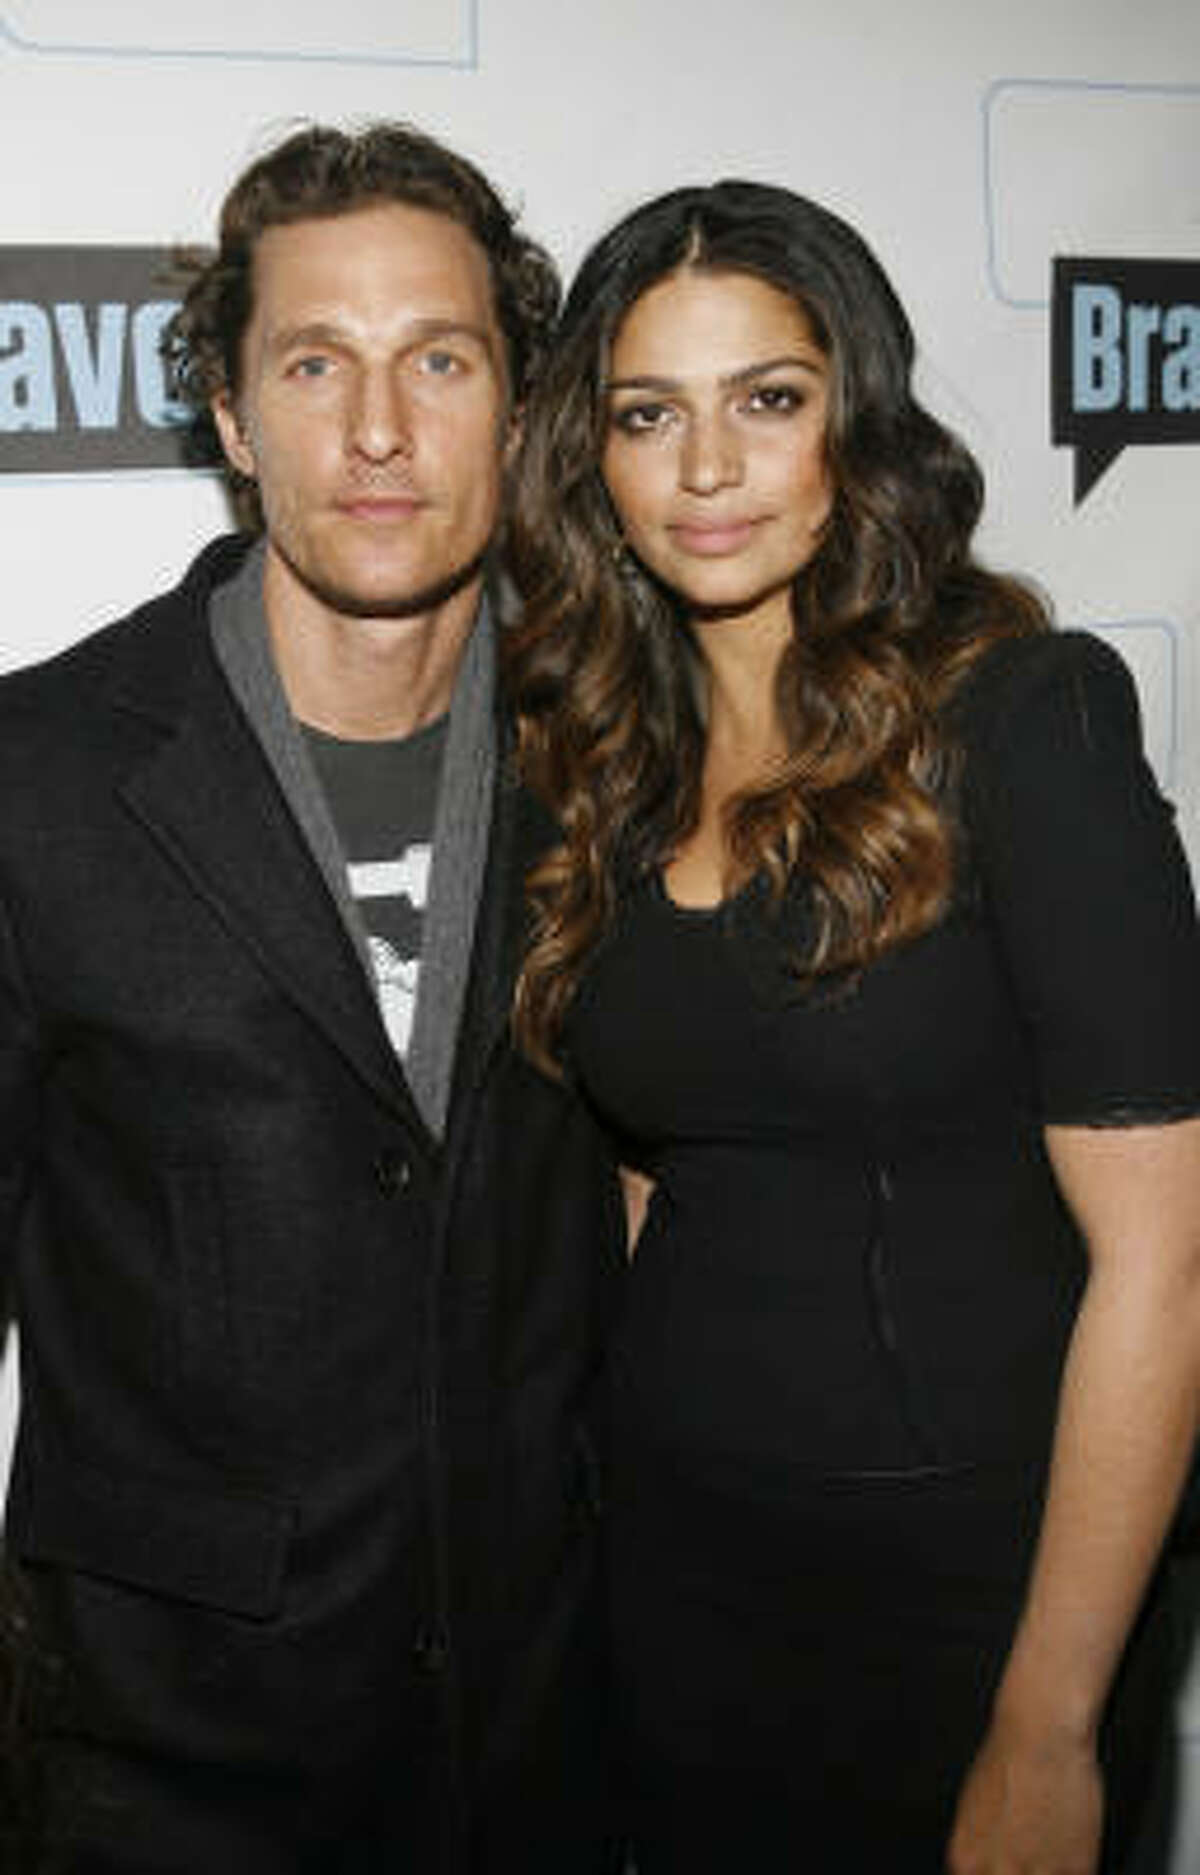 Recently, McConaughey had two children with girlfriend Camila Alves, host of Bravo's Shear Genius.